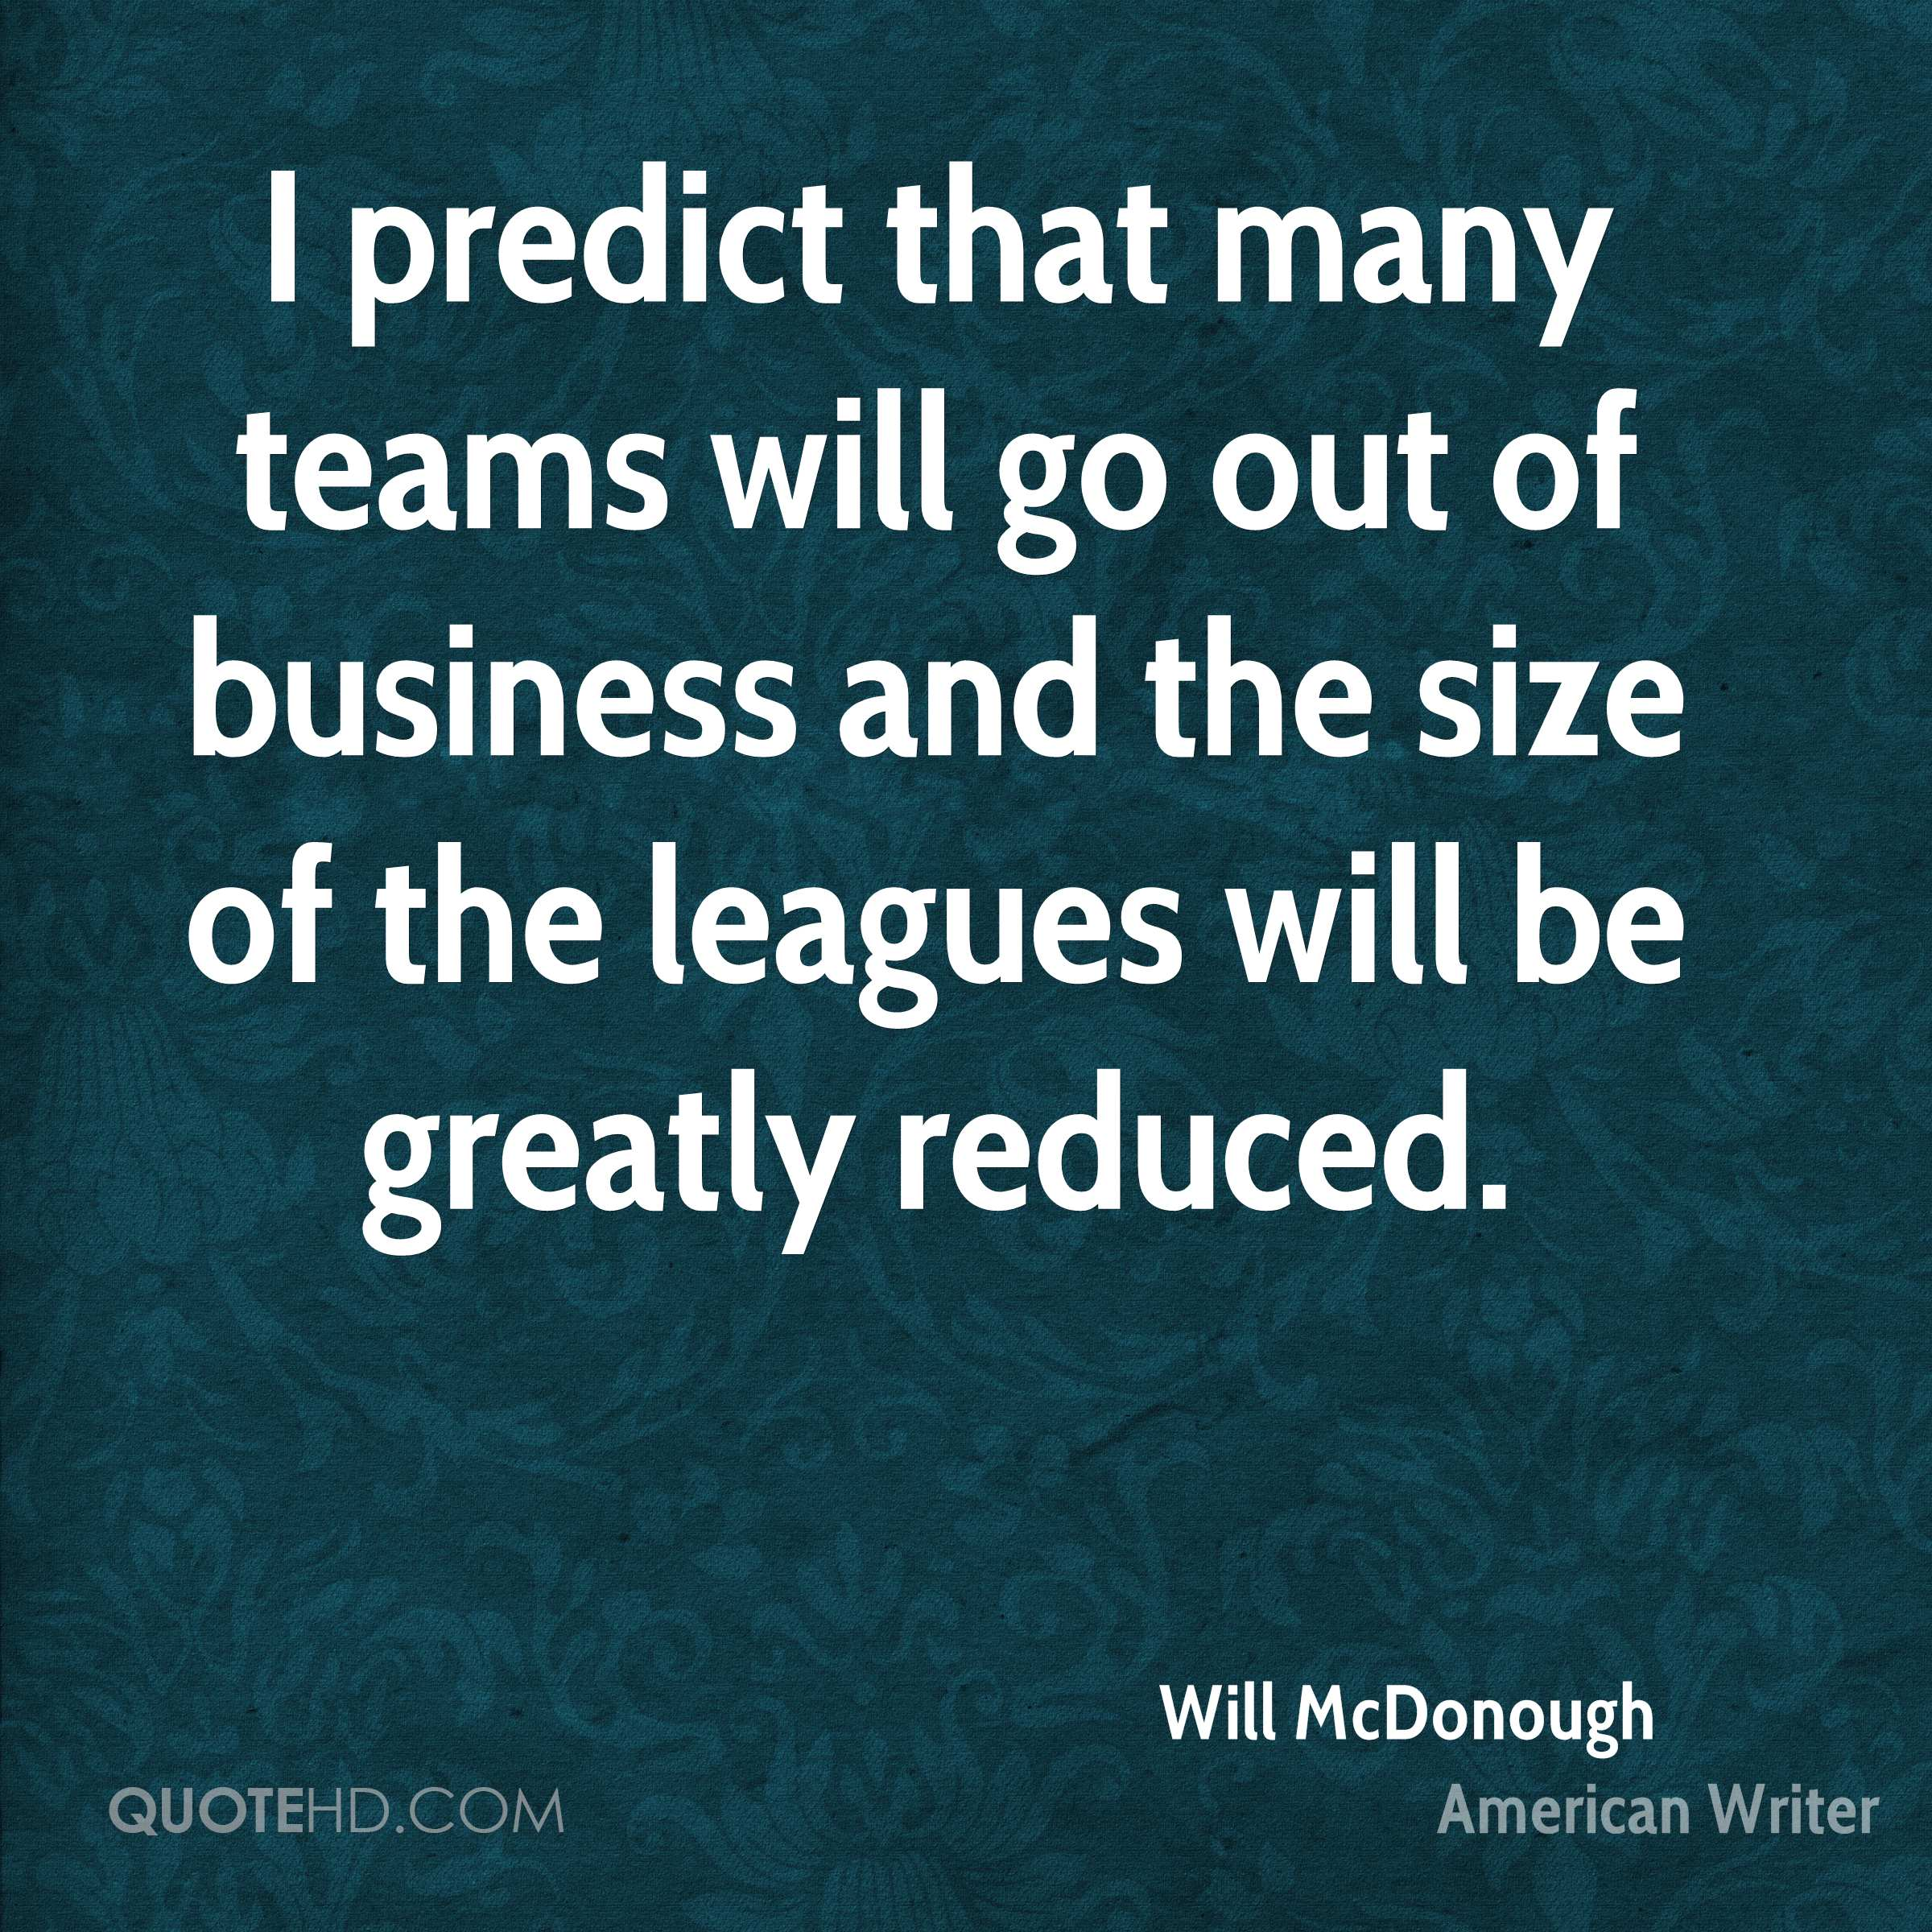 I predict that many teams will go out of business and the size of the leagues will be greatly reduced.